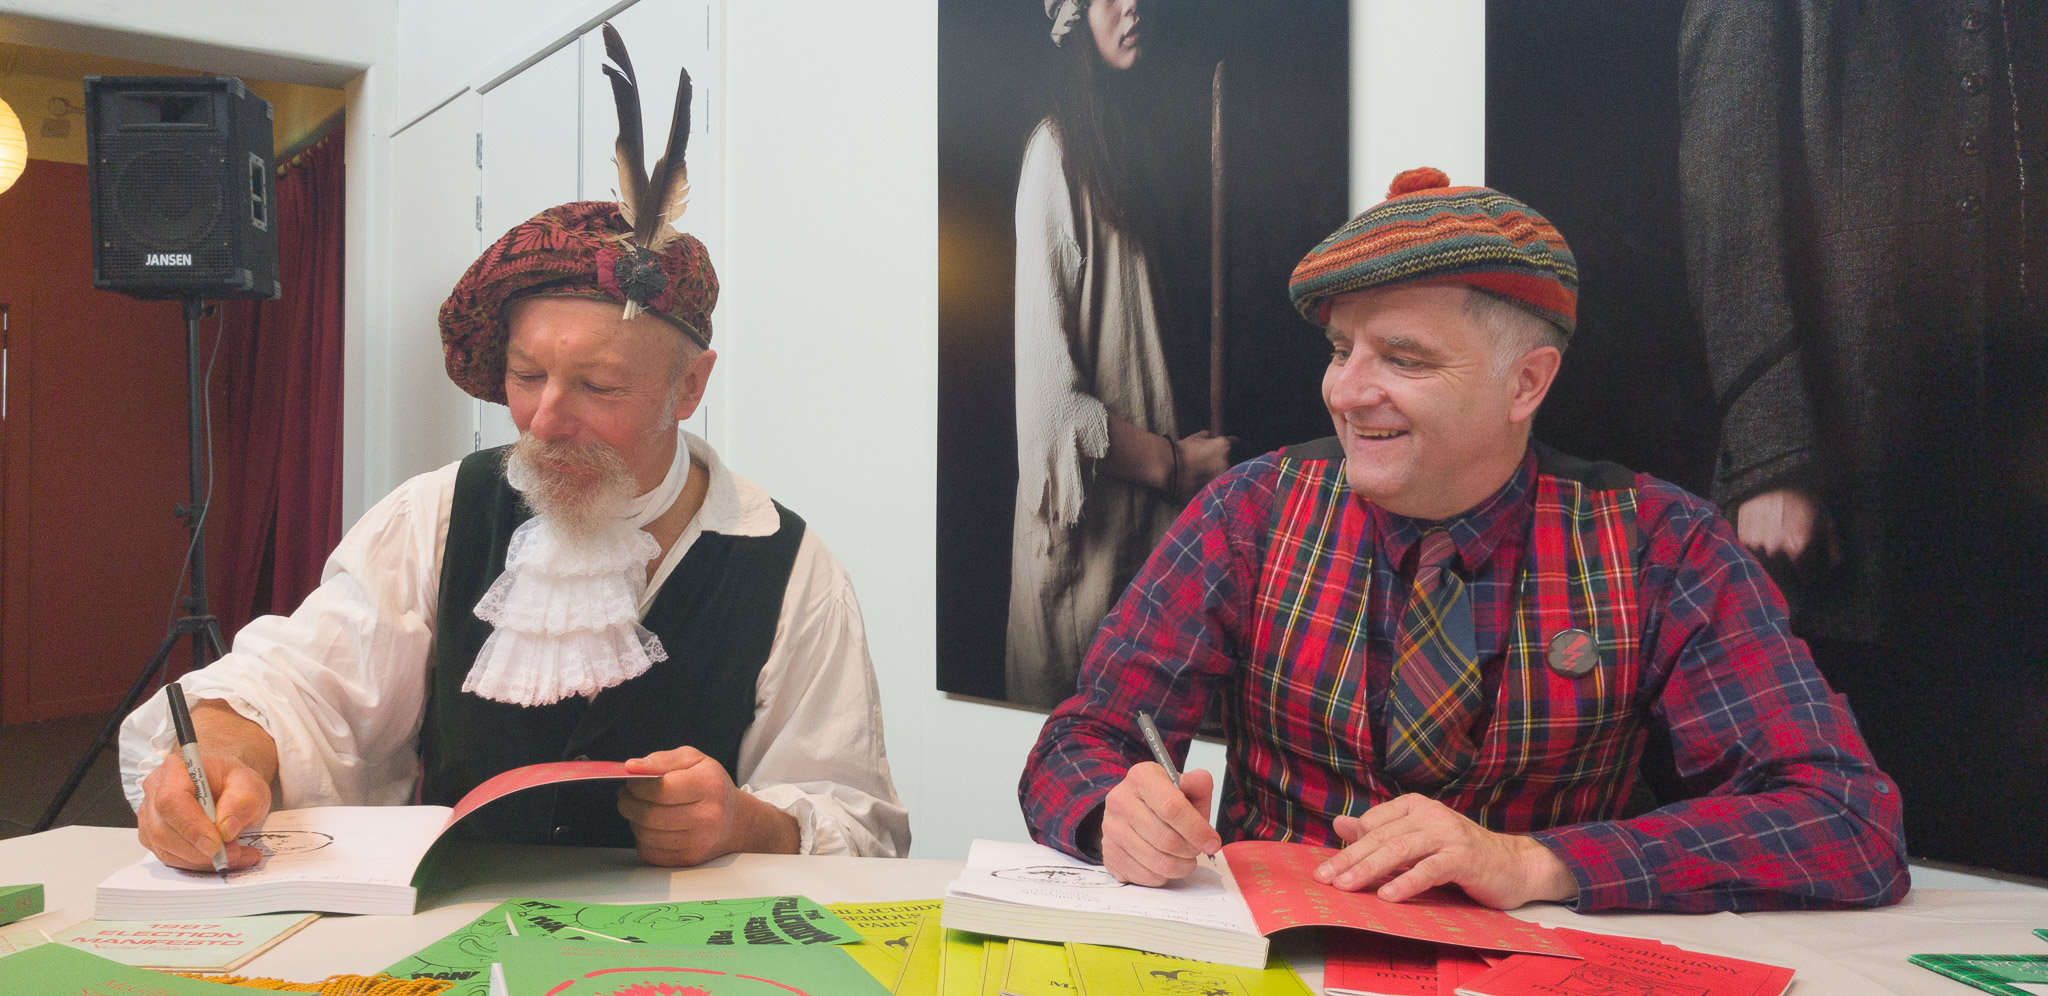 Graeme Cairns & Mark Servian book signing at the McGillicuddy Serious Party Manifesto Folio book launch, The Meteor Theatre, Hamilton, Waikato, New Zealand. Saturday 7 July 2018